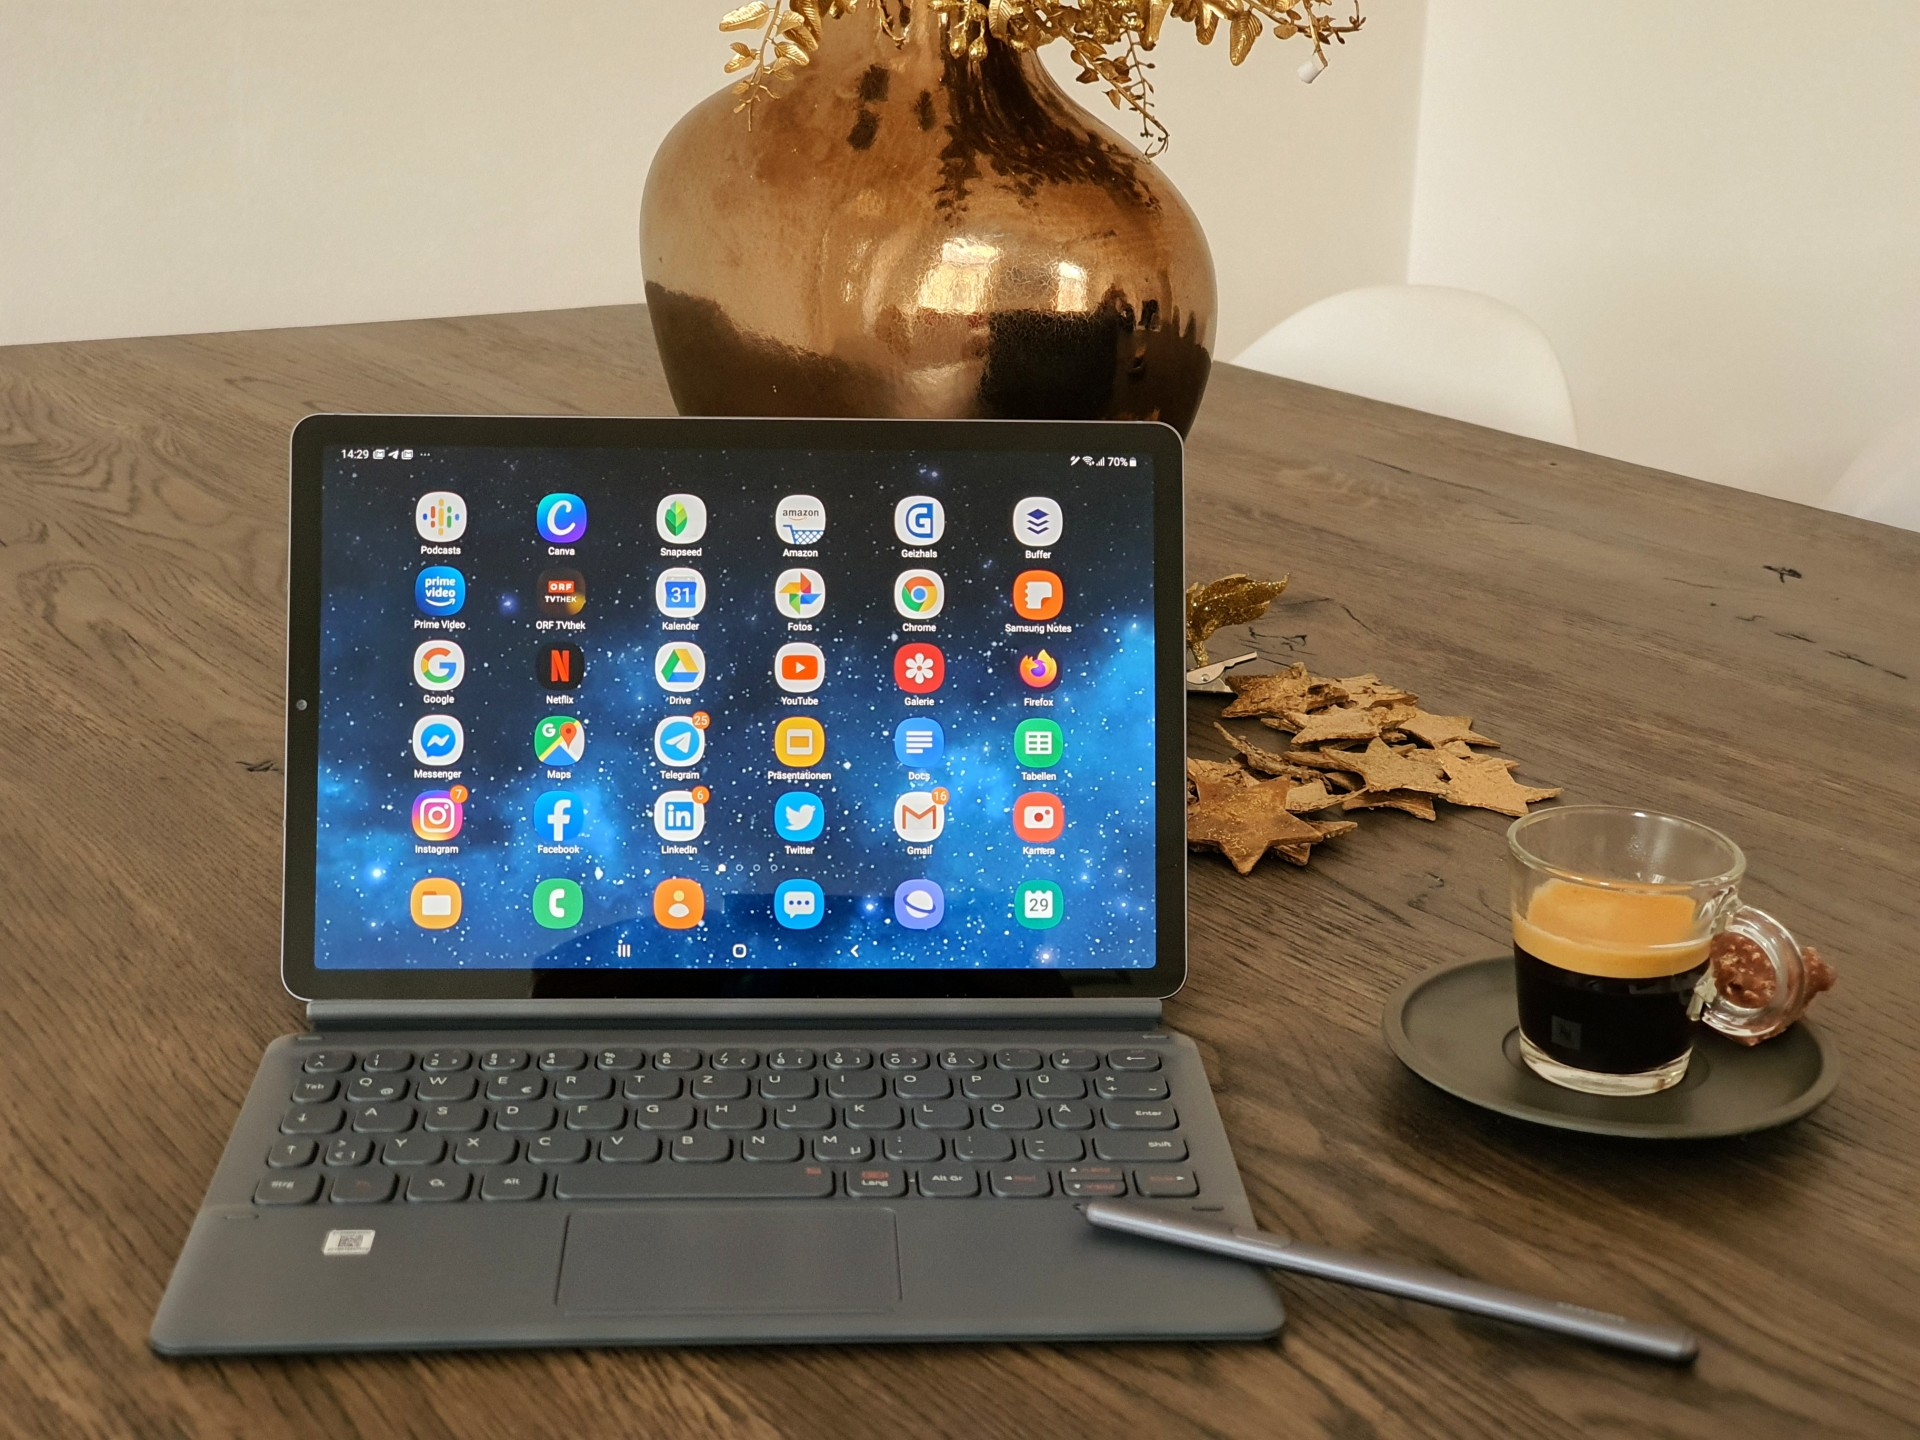 Samsung Galaxy Tab S6 The Best Tablet For Mobile Content Creators And Creative Travelers The Vienna Blog Lifestyle Travel Blog In Vienna